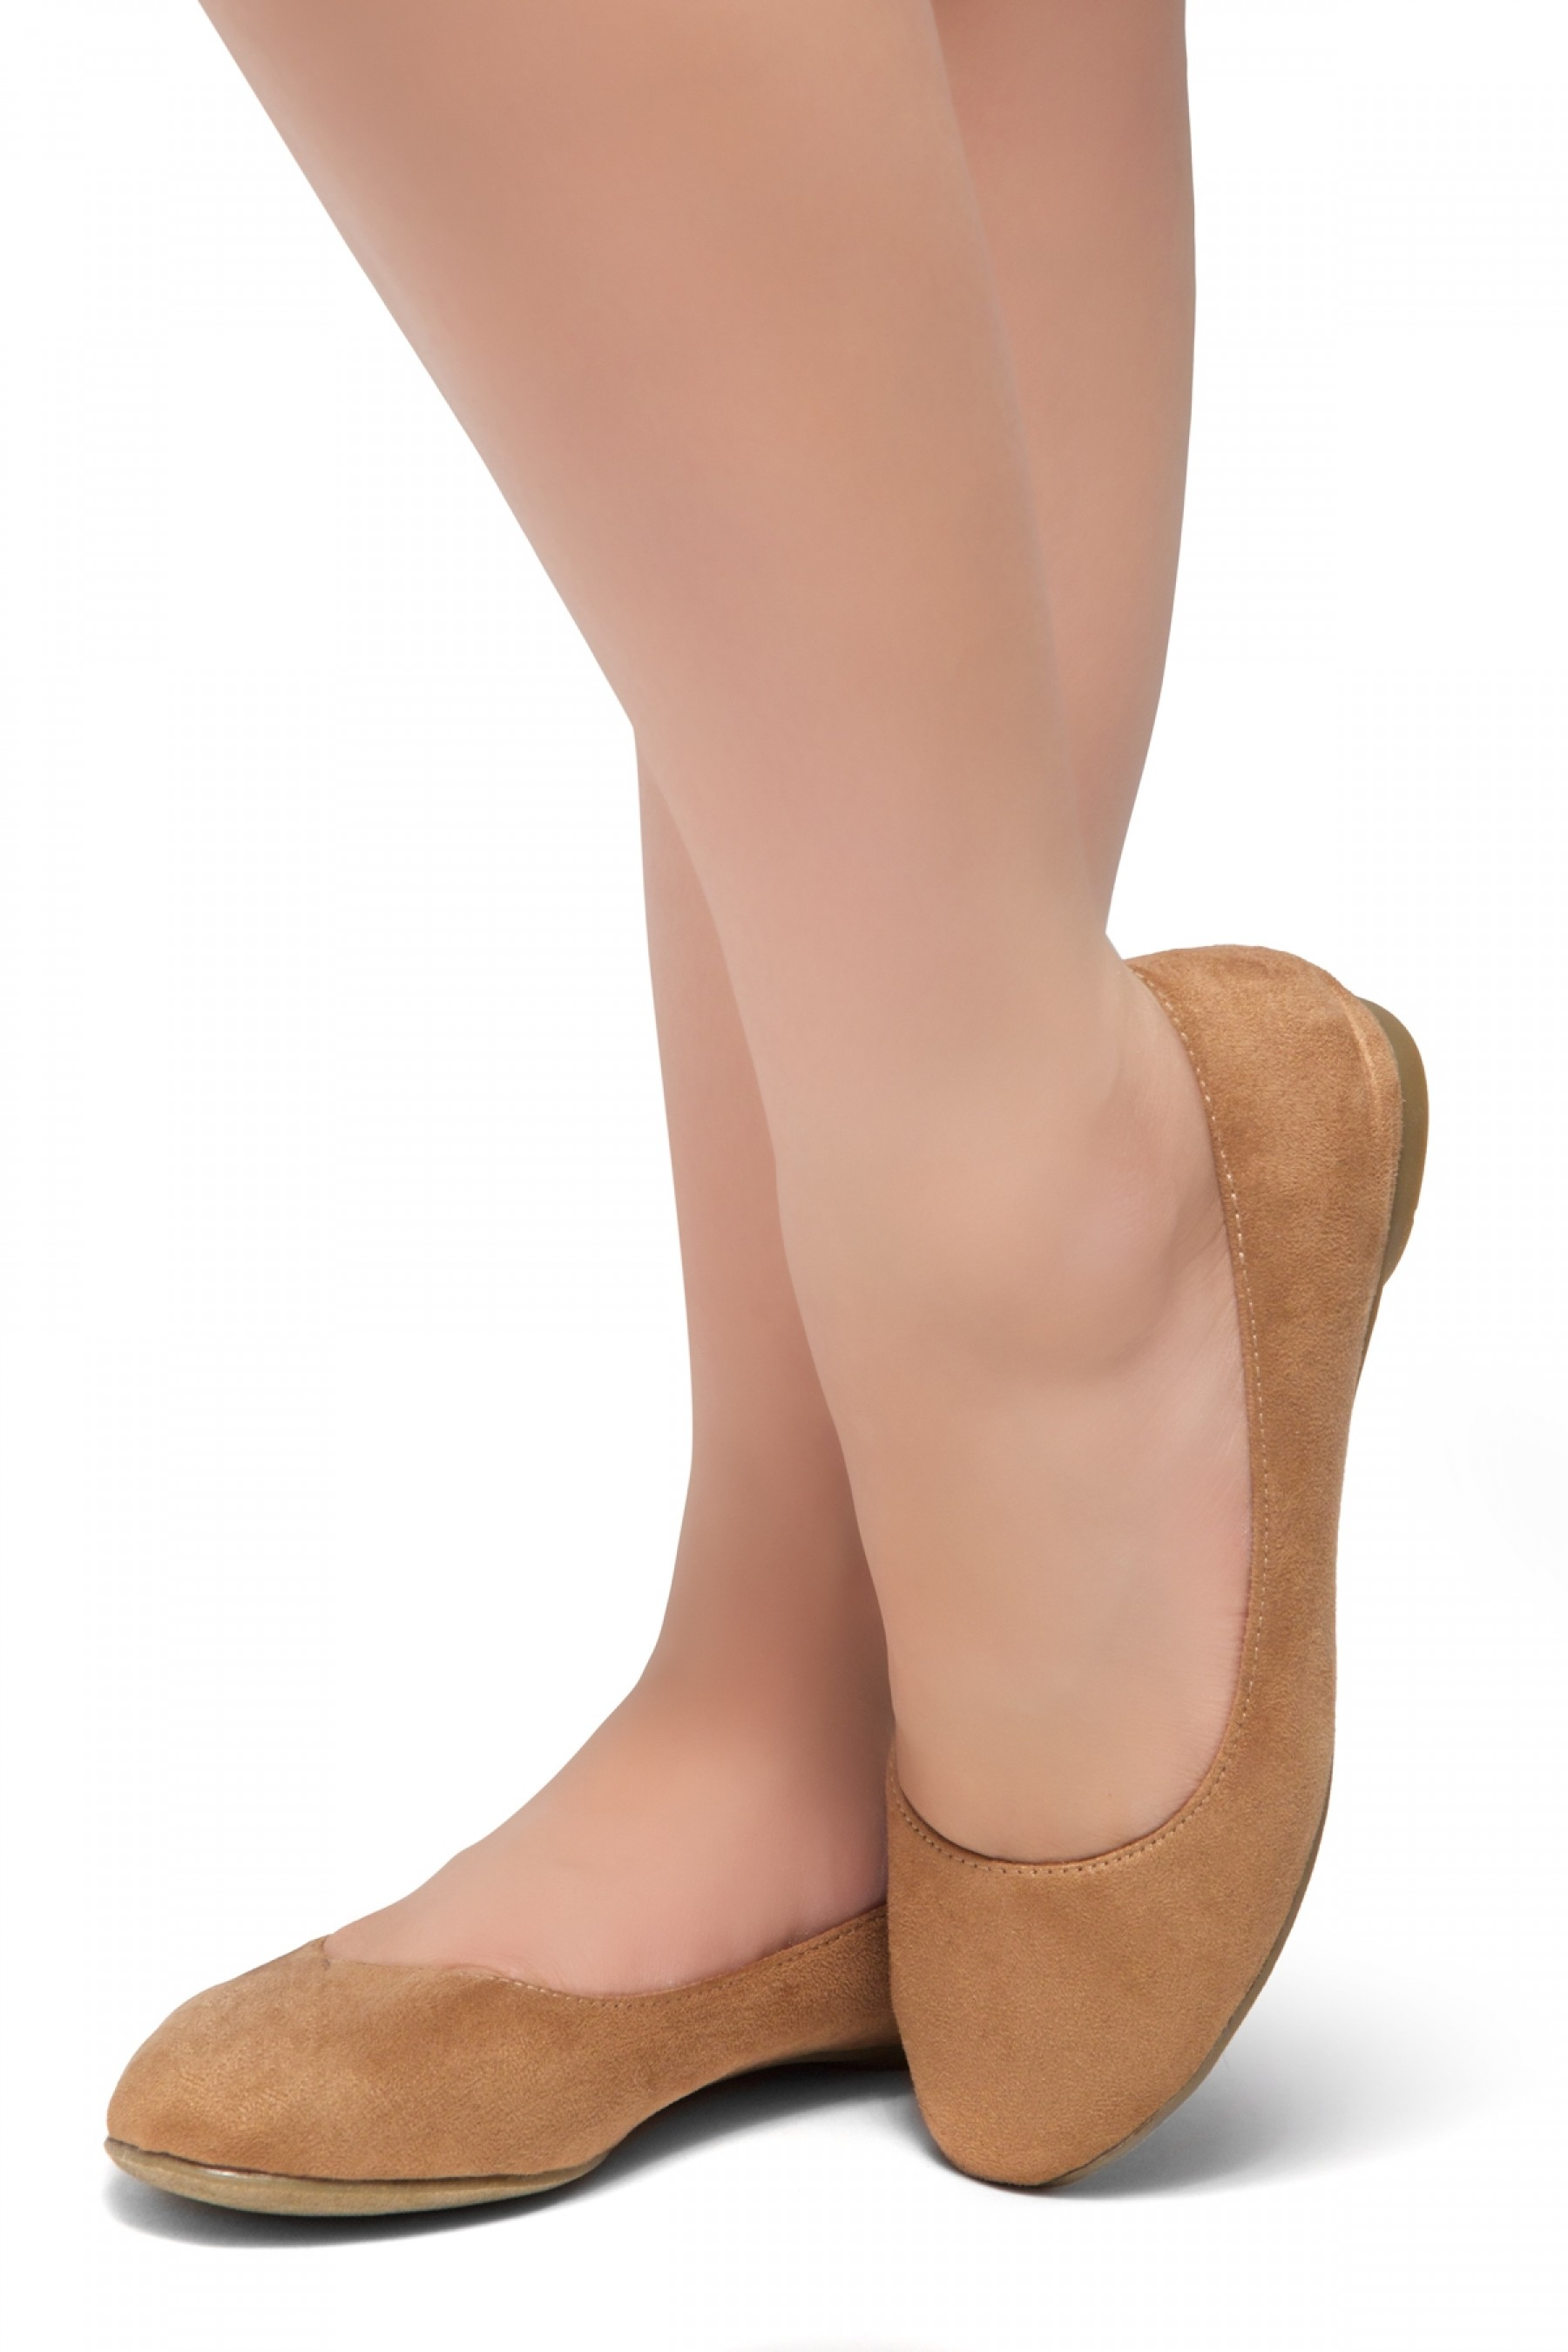 HerStyle Ever Memory -Almond Toe, No detail, Ballet Flat (Tan IM)